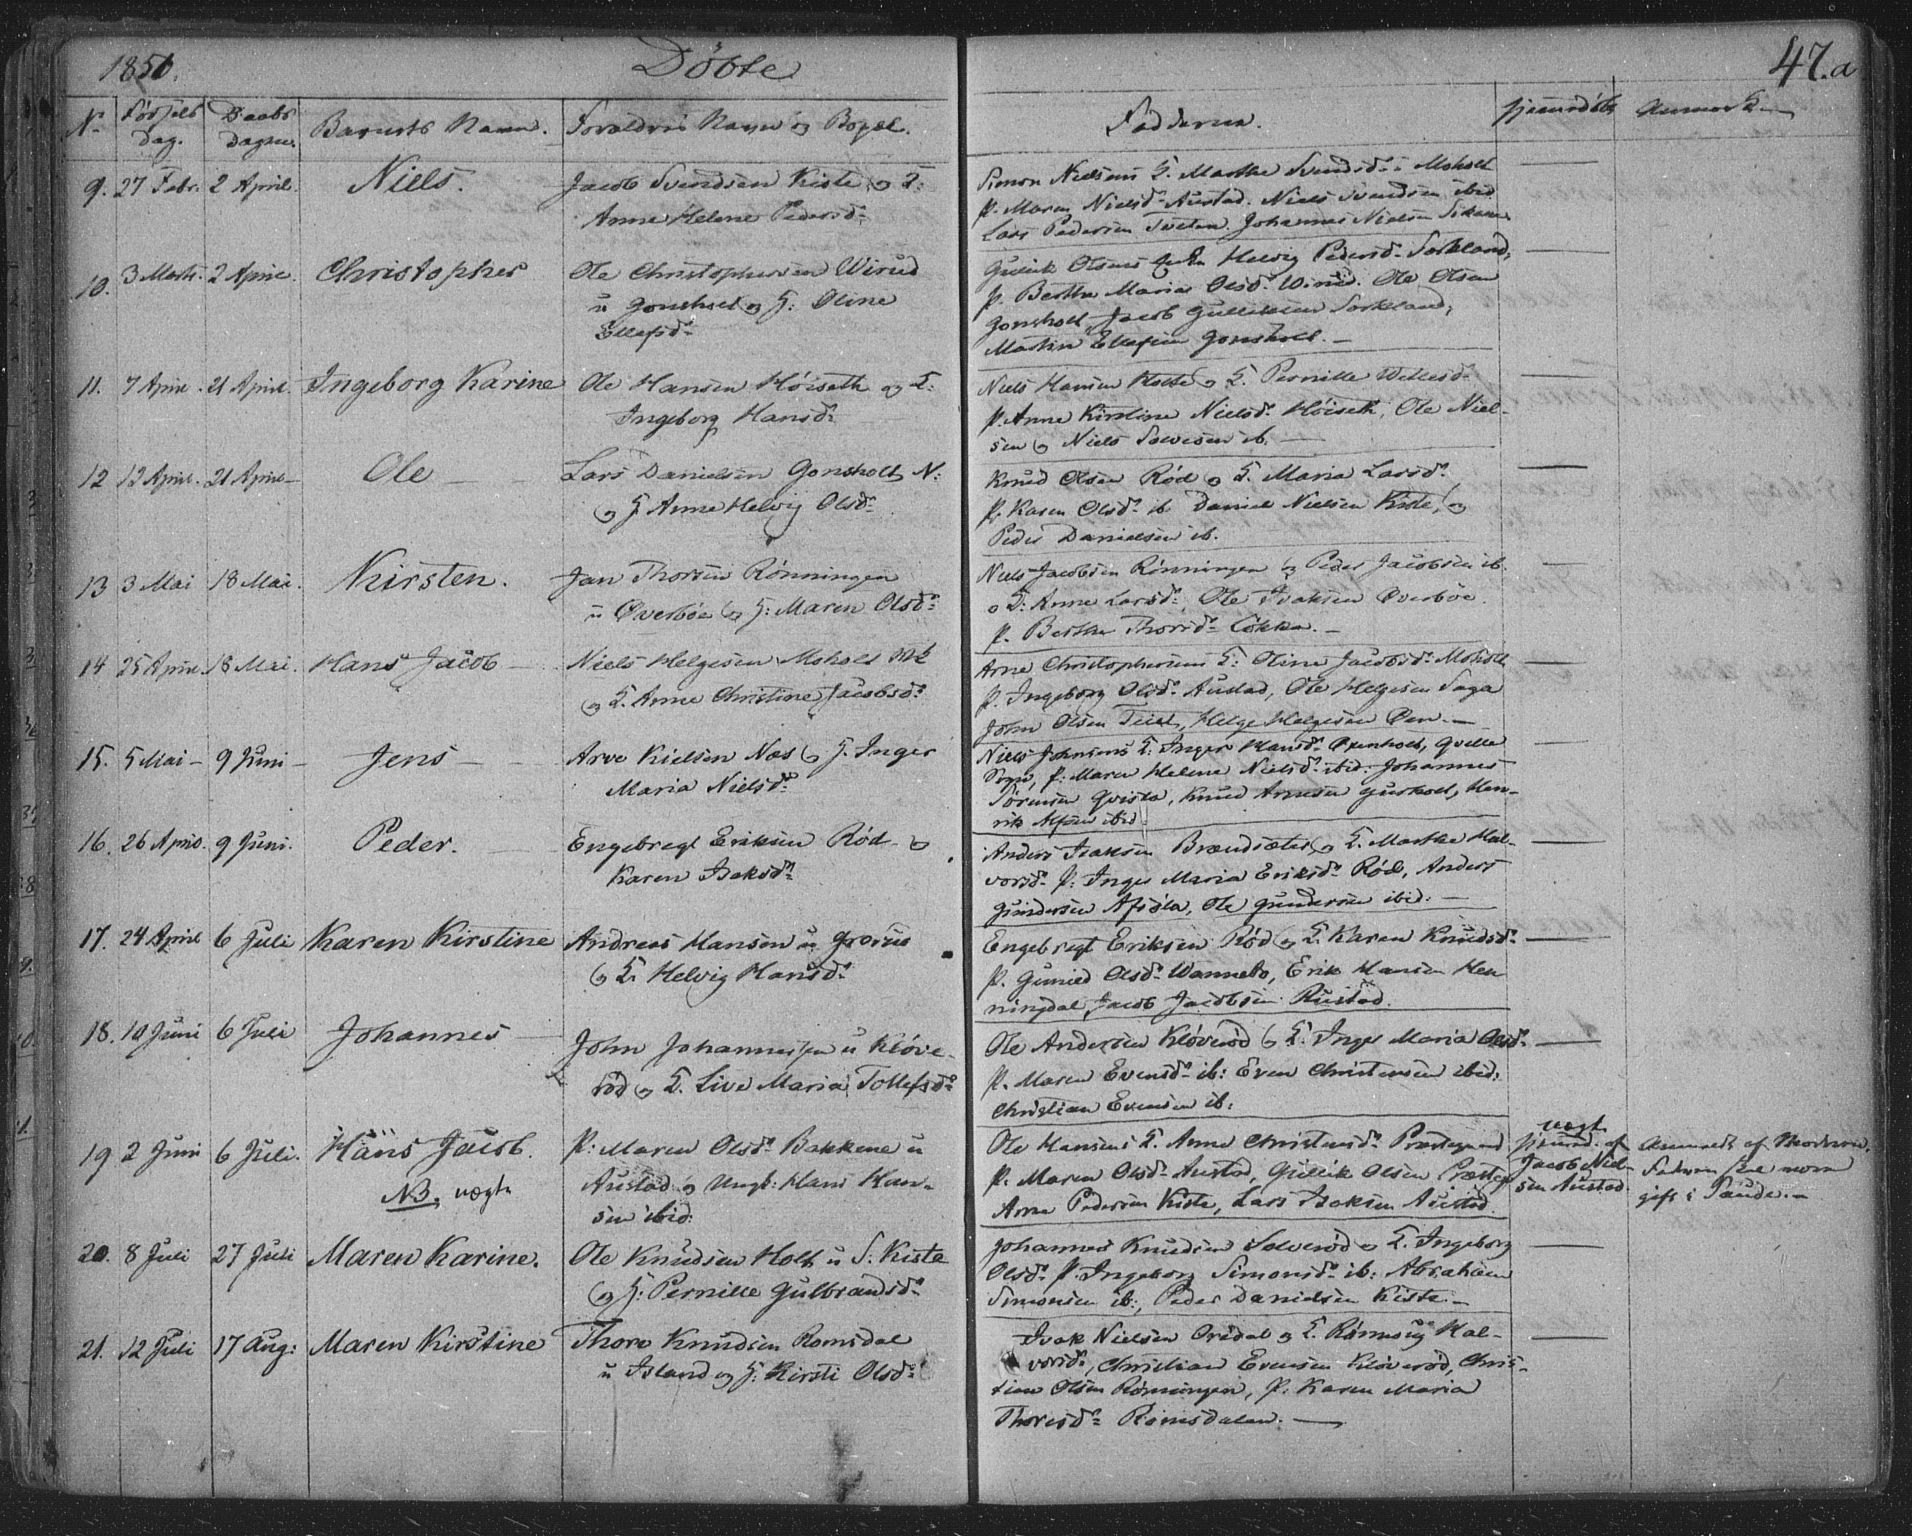 SAKO, Siljan kirkebøker, F/Fa/L0001: Parish register (official) no. 1, 1831-1870, p. 47